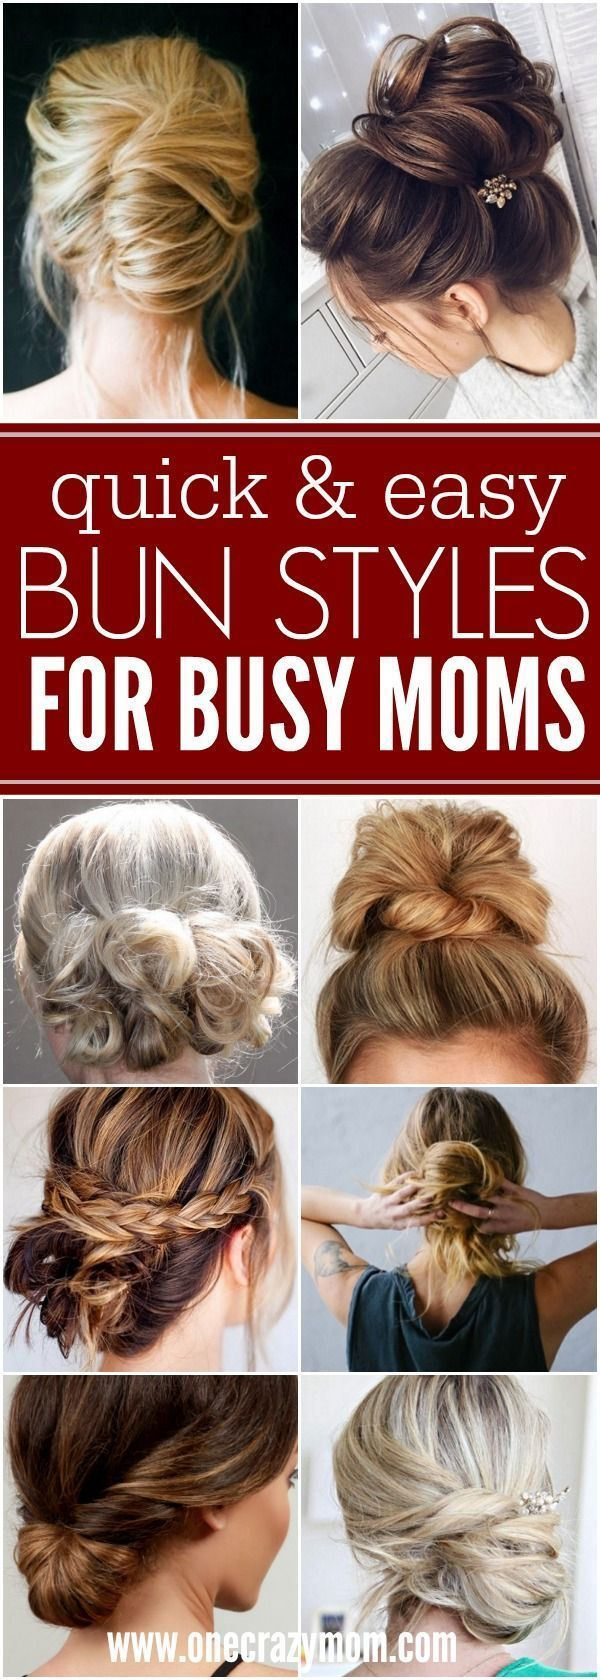 best 25+ very easy hairstyles ideas on pinterest | braids tutorial